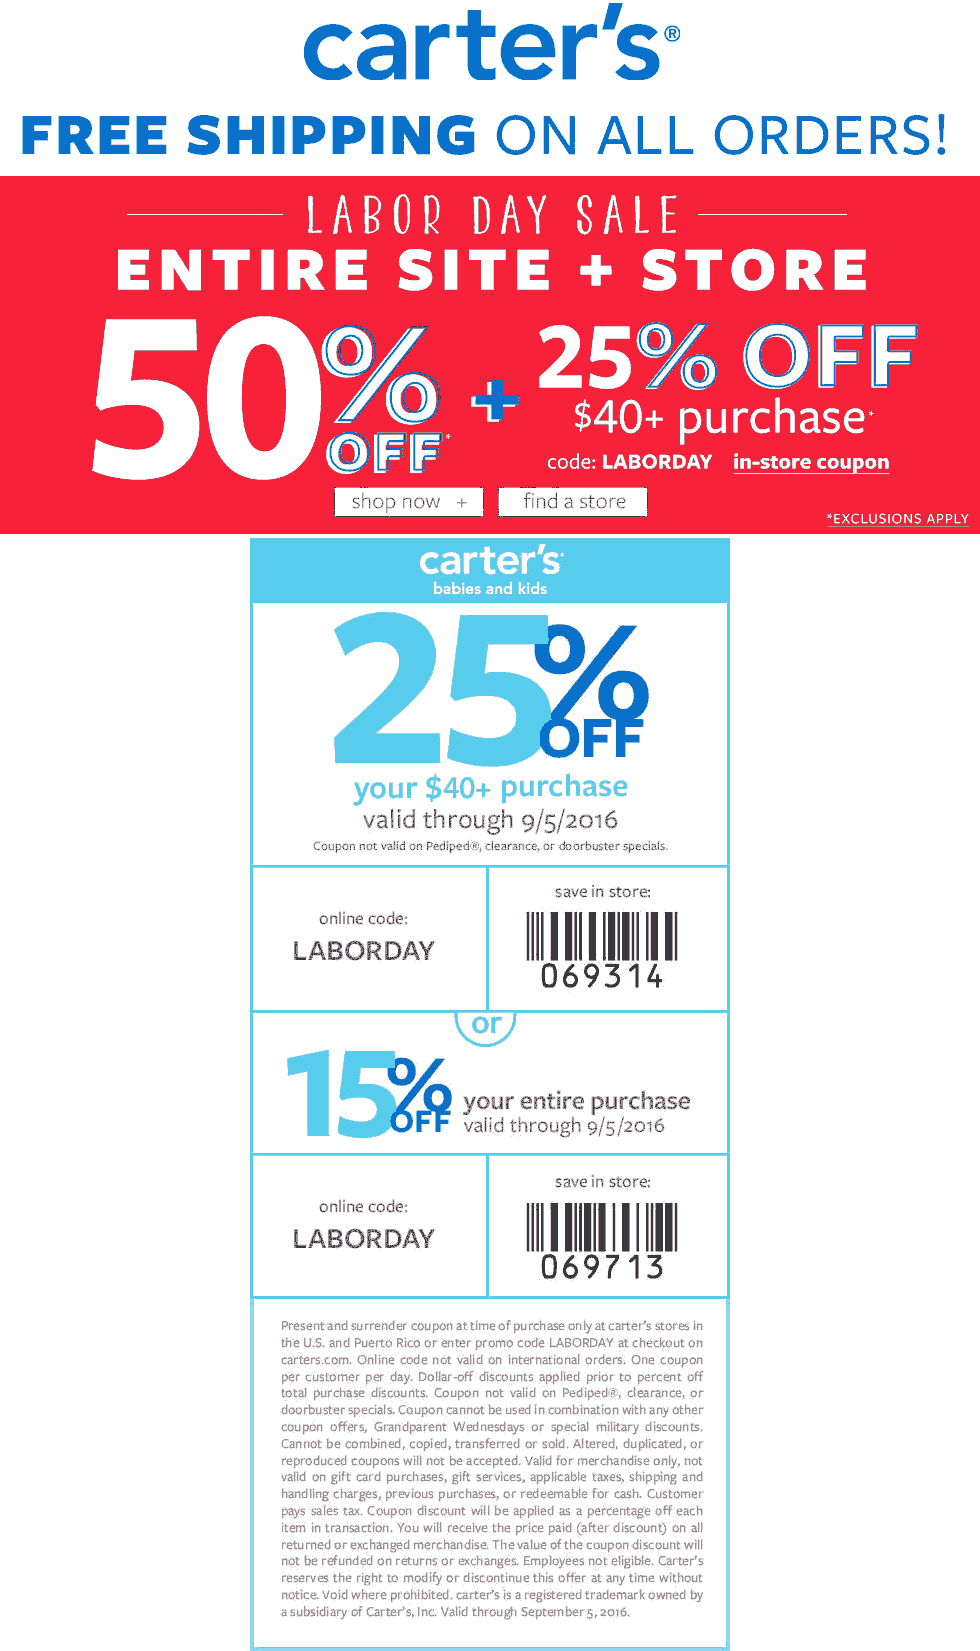 Carters Coupon January 2018 50% off everything + another 25% off $40 at Carters, or online via promo code LABORDAY